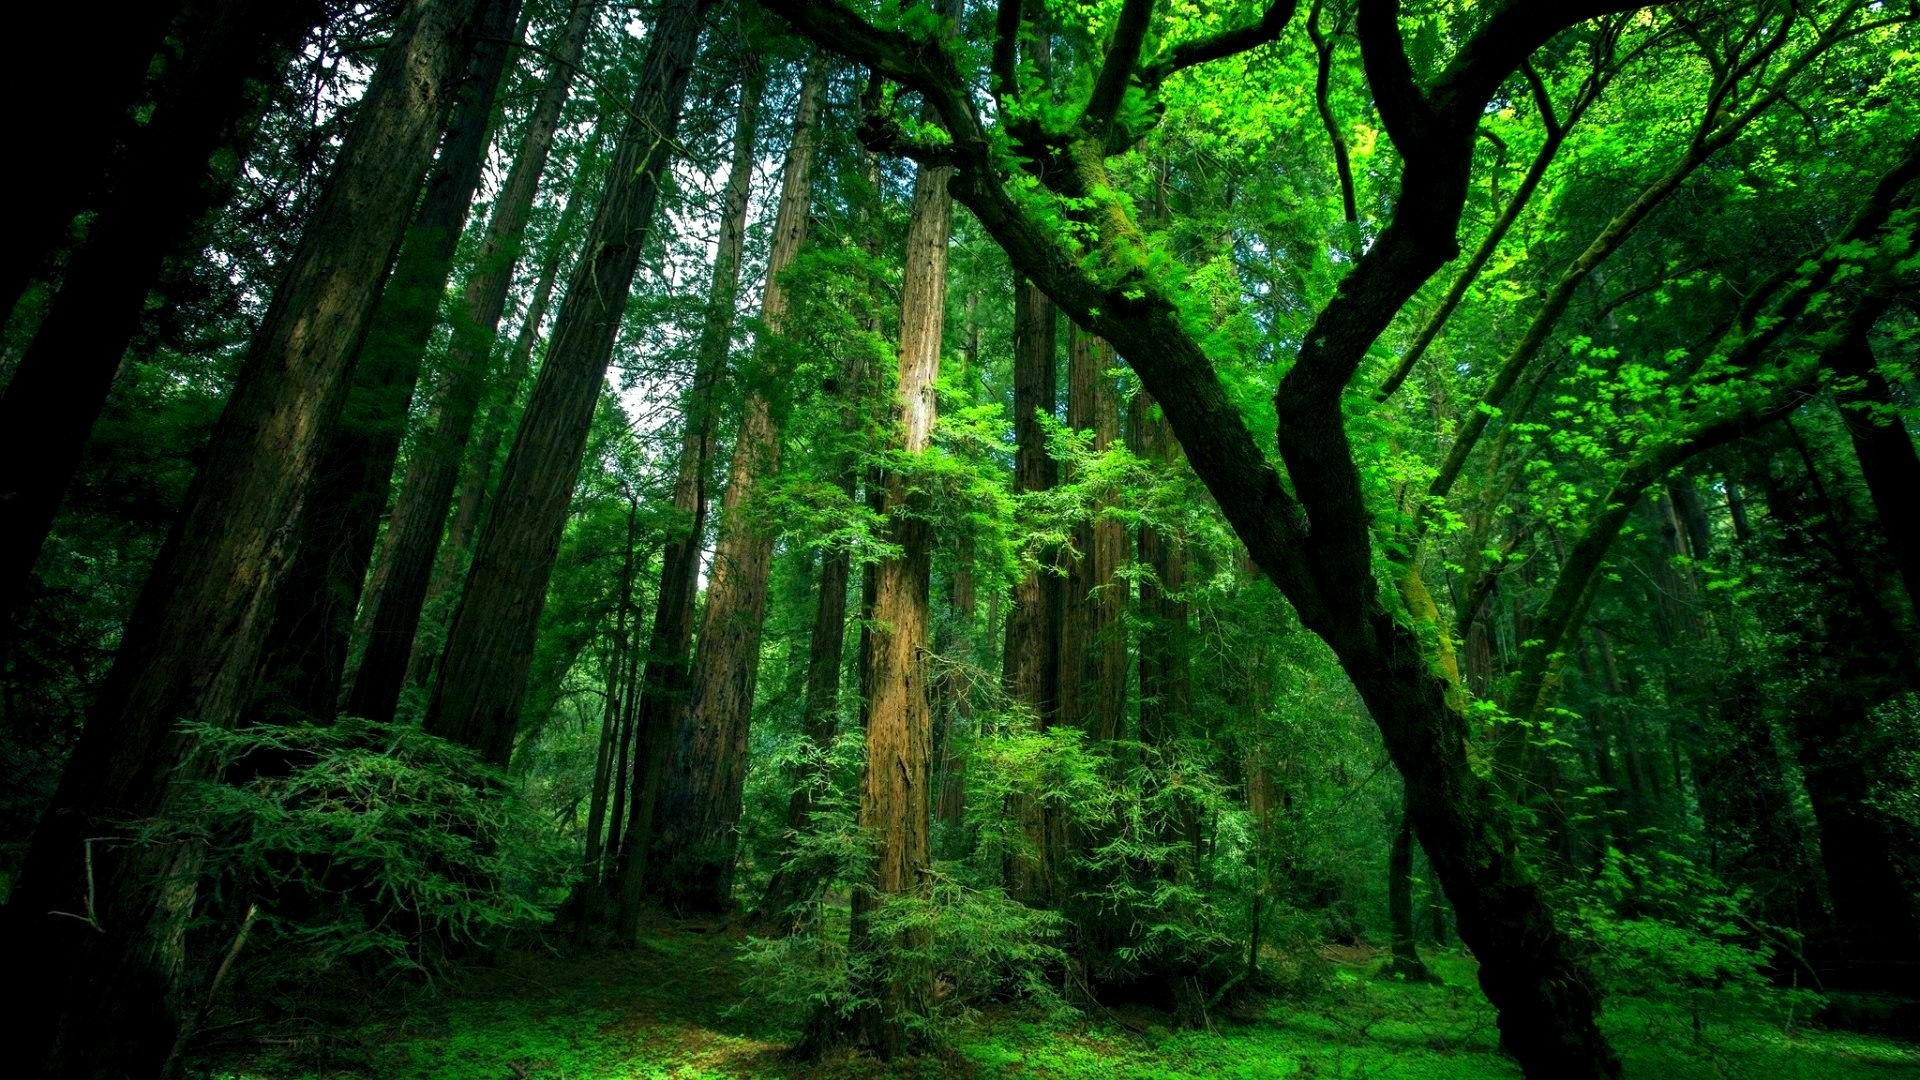 Dark Green Nature Wallpapers Mobile: Nature Wallpapers 1600x900 ·①